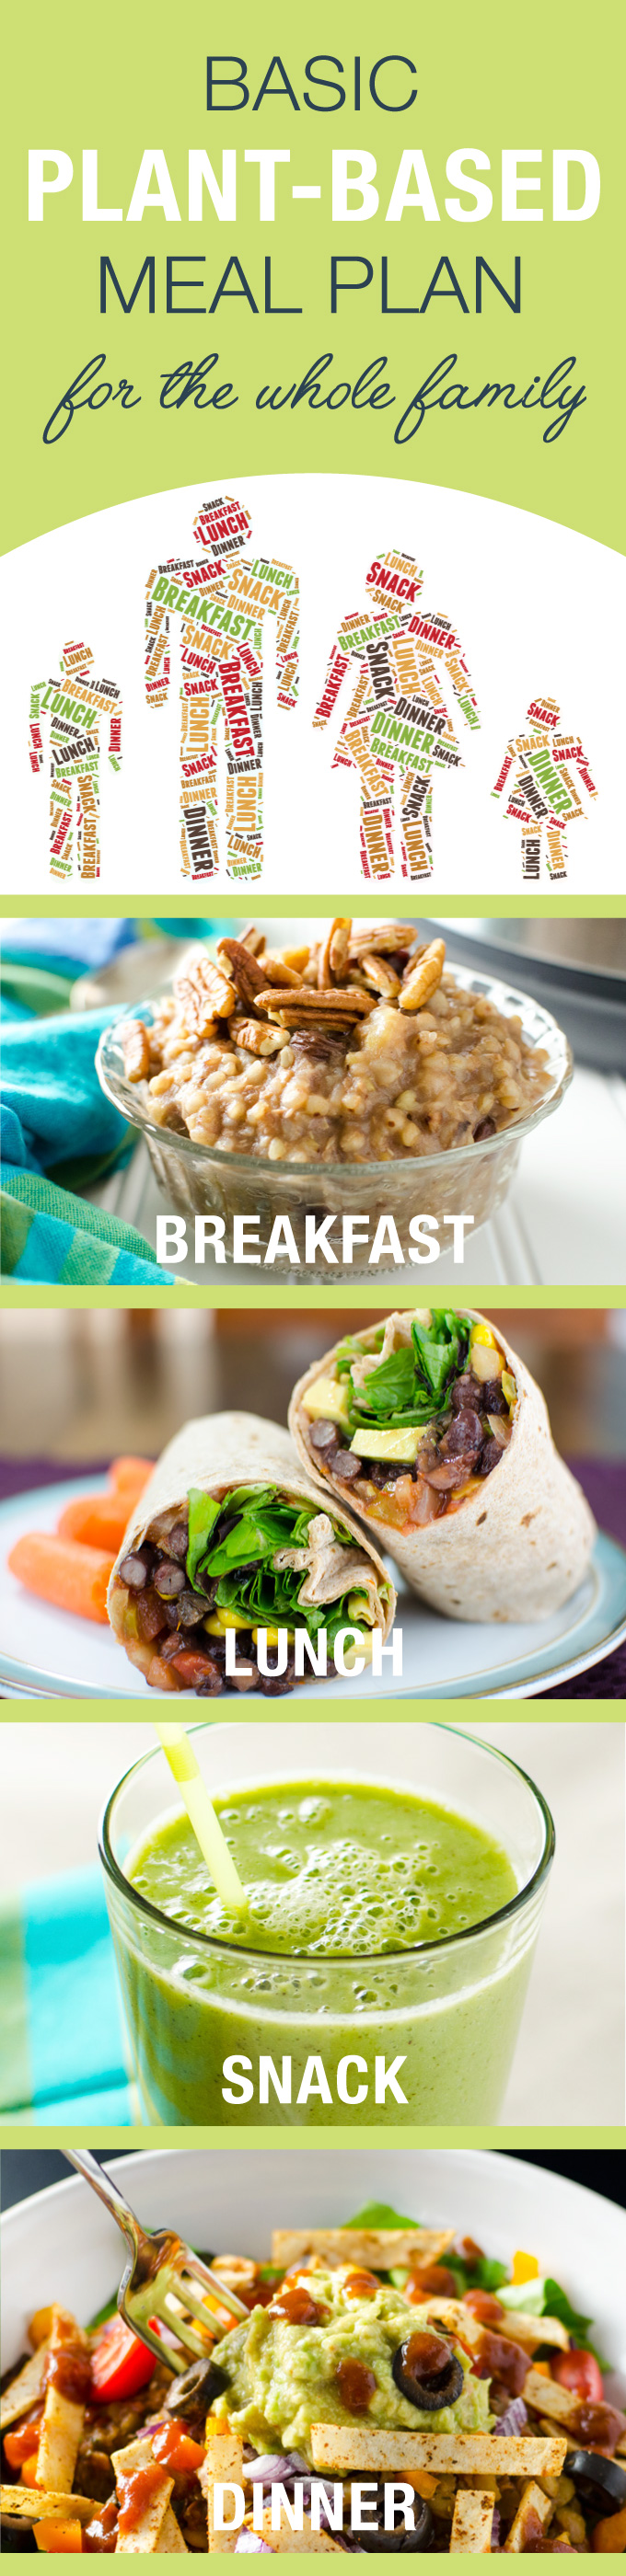 Basic Plant Based Meal Plan Breakfast Lunch Snack And Dinner